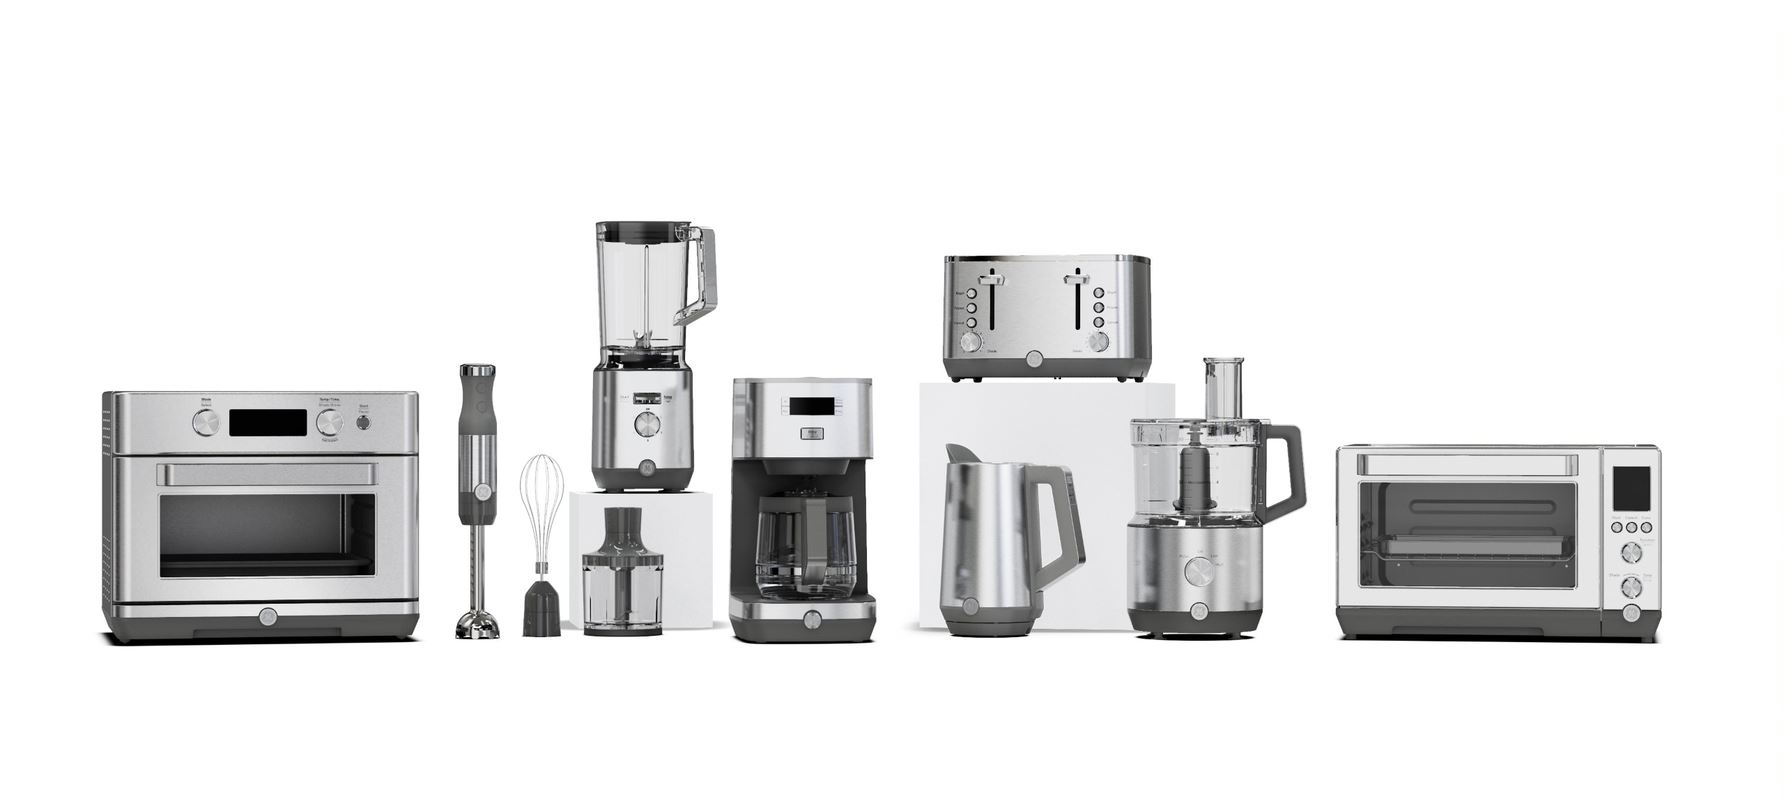 Line-Up of New GE-branded Small Appliances